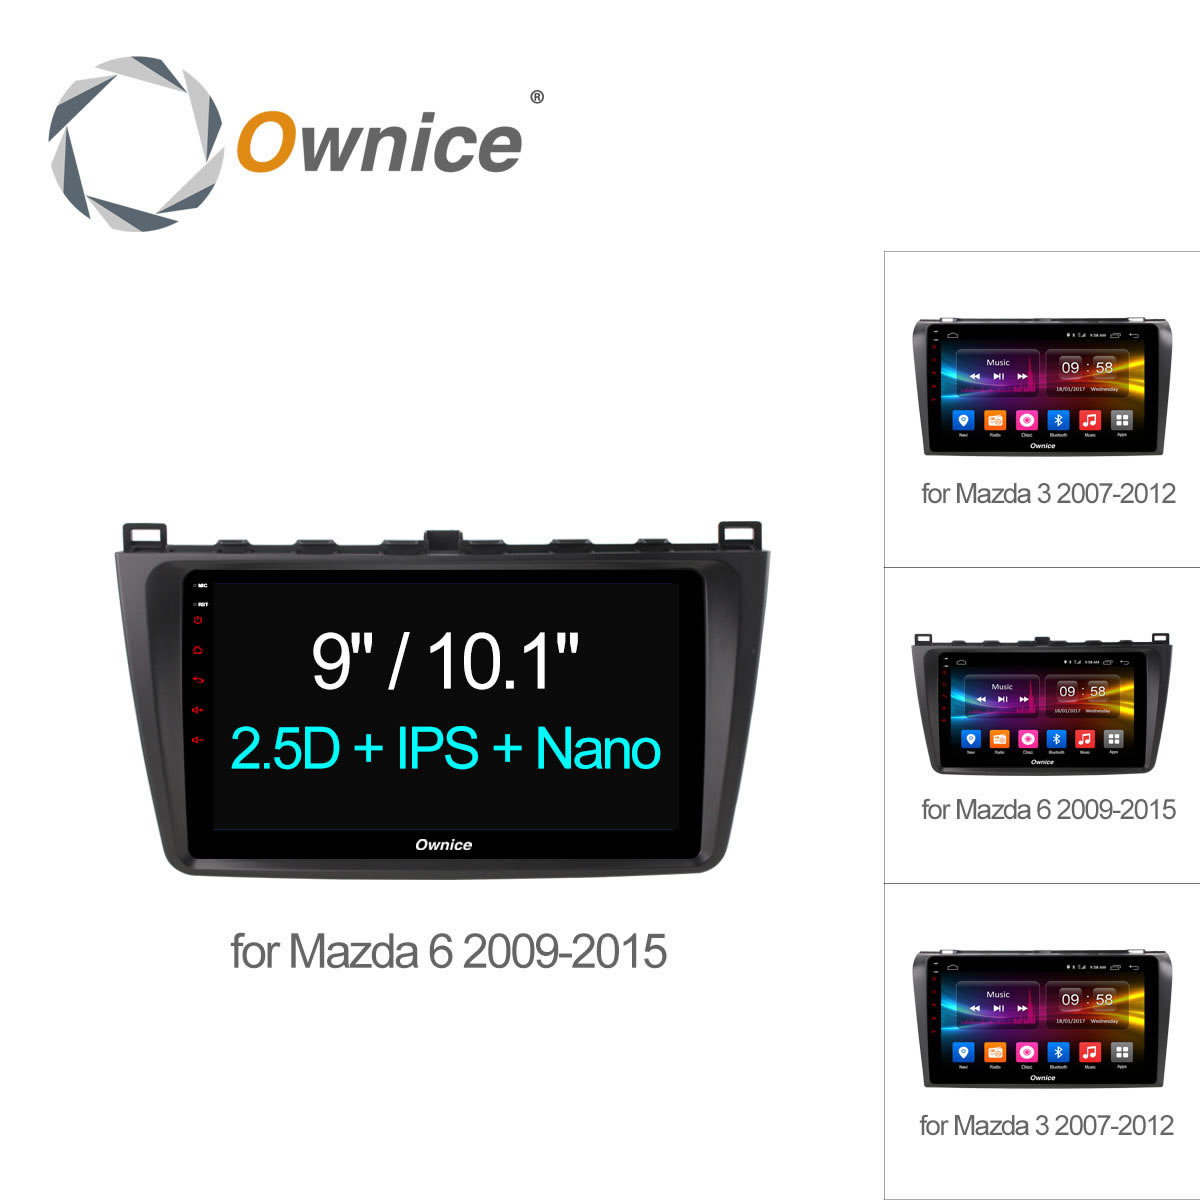 9 Ownice C500 + Android 6.0 Voiture lecteur DVD GPS Pour Mazda 3 Mazda 6 Autoradio Multimédia Octa base 4G LTE 2 GB + 32 GB DAB + Radio RDS